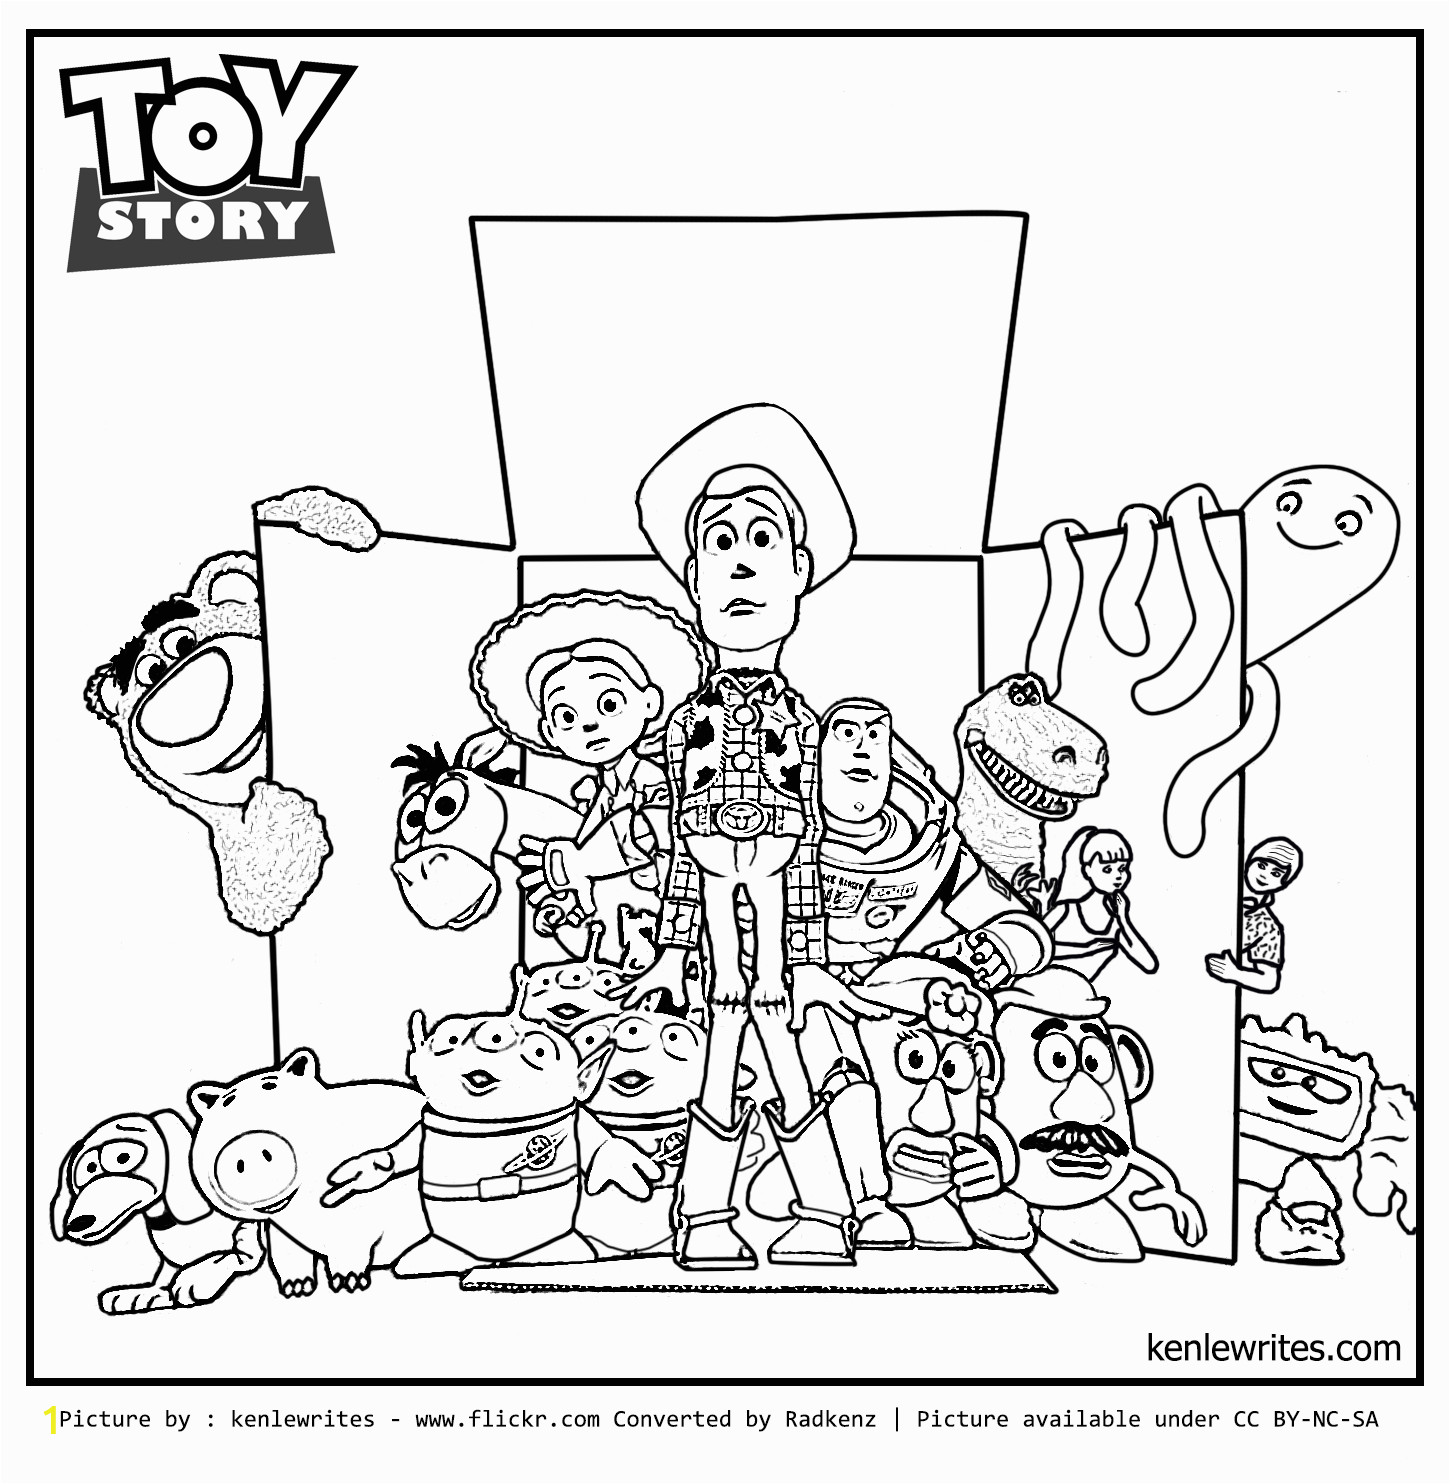 toy story 3 coloring page out of box